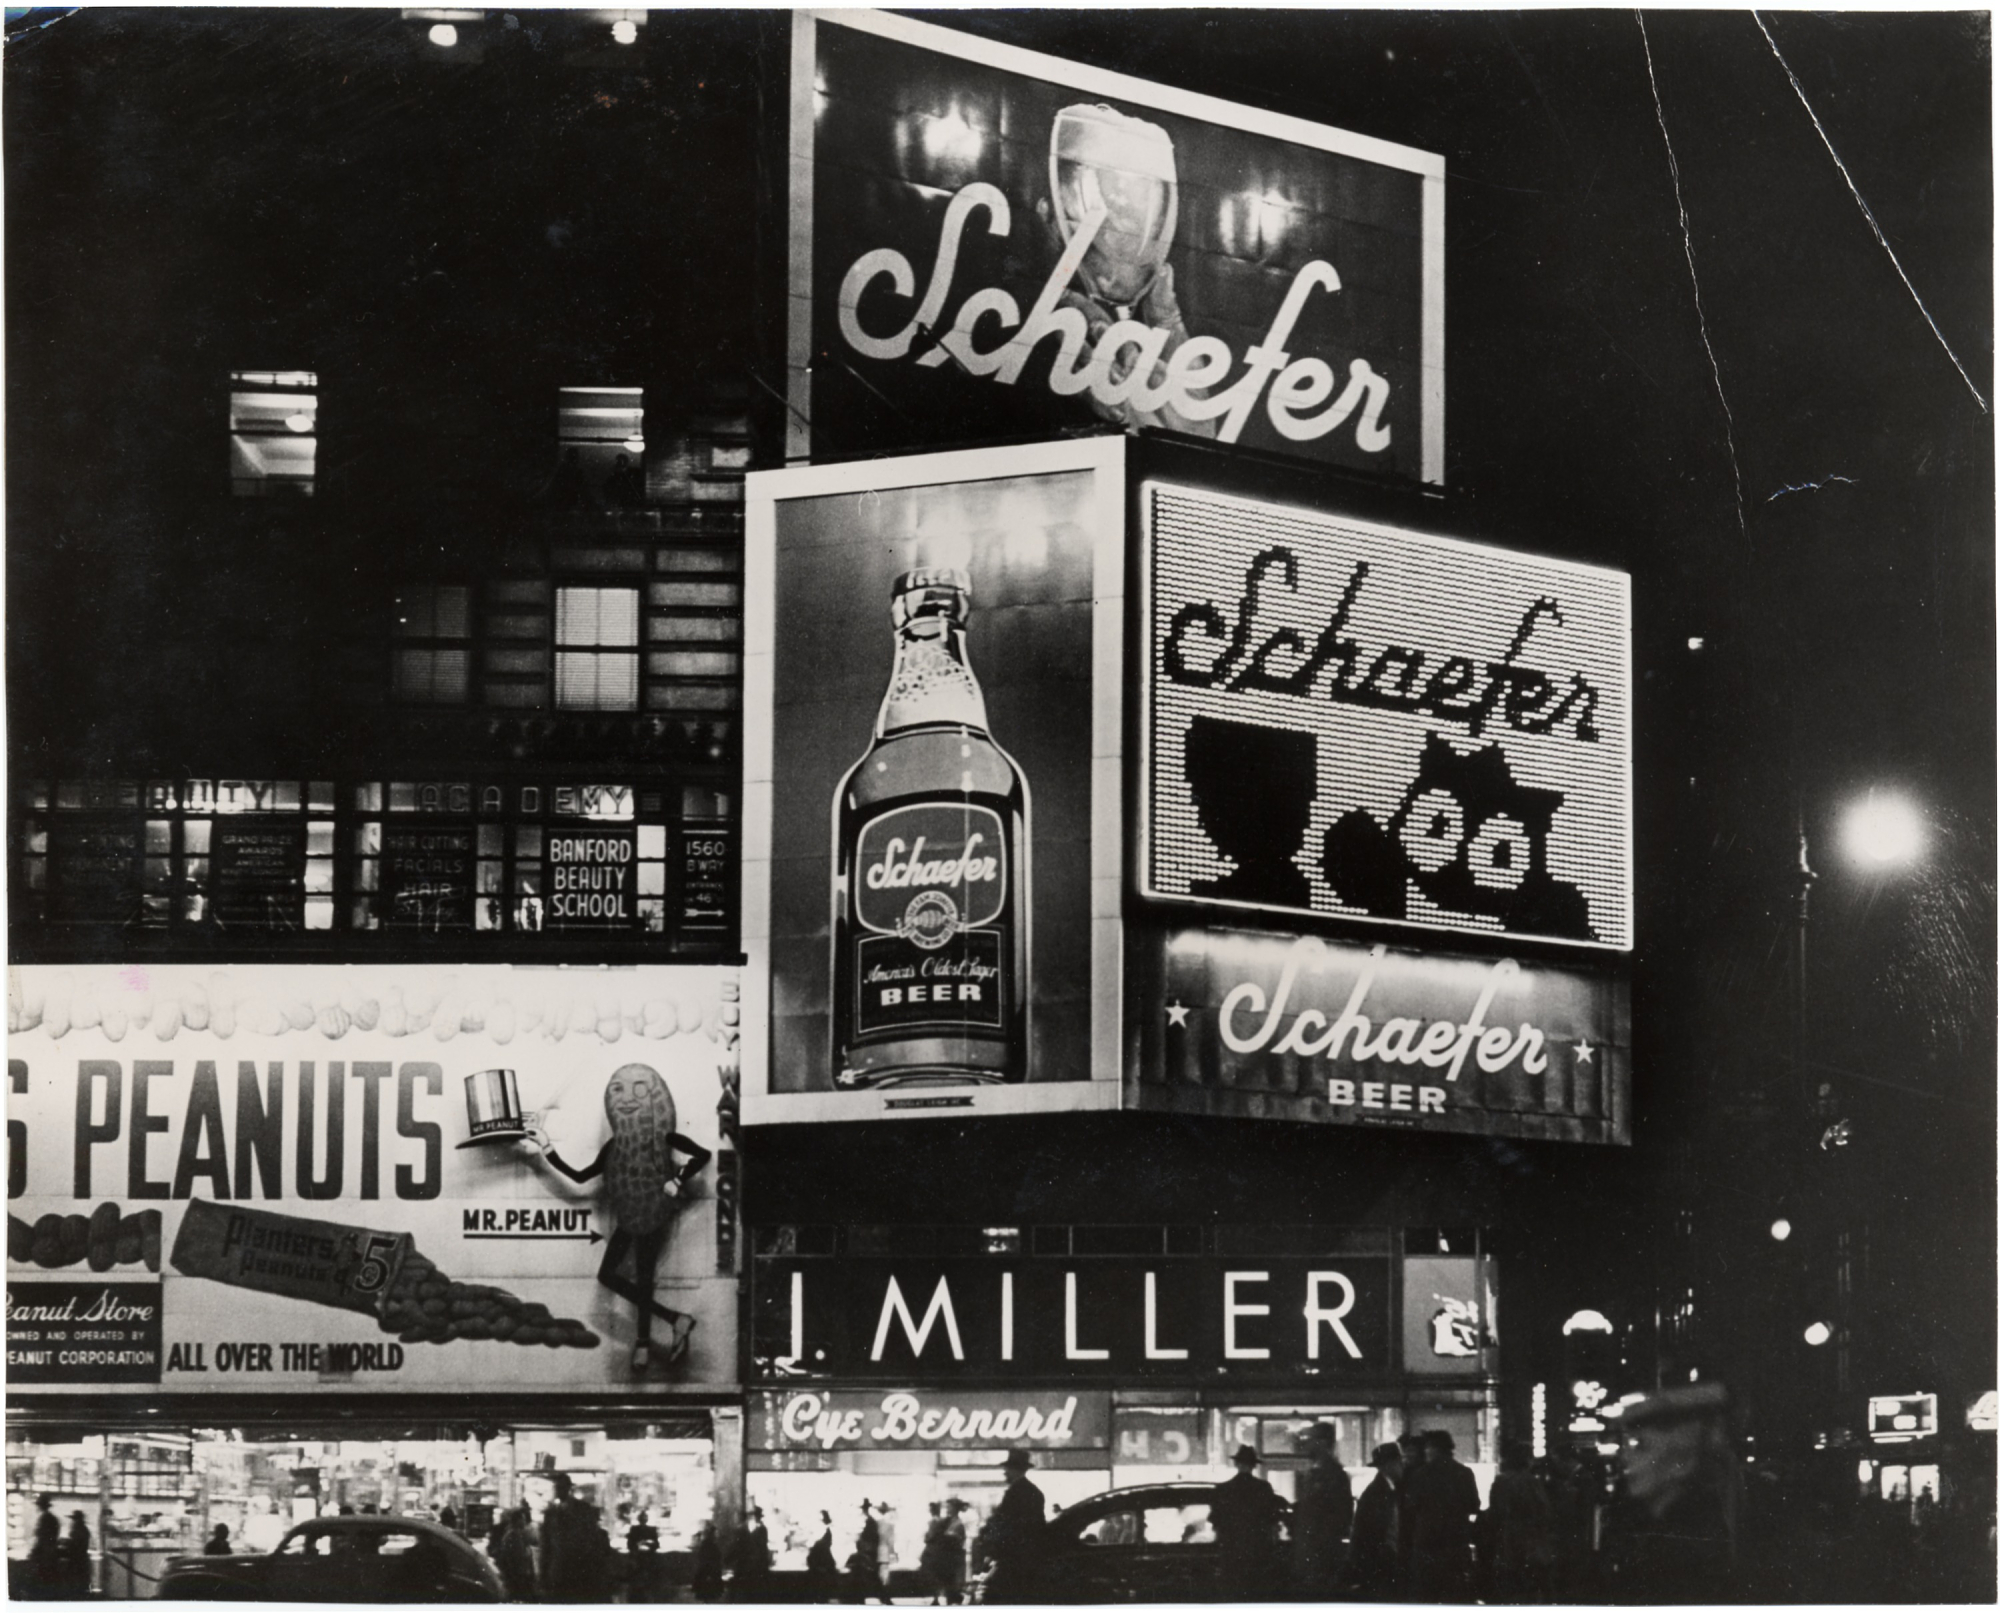 Schaefer billboards, Times Square, 1950's